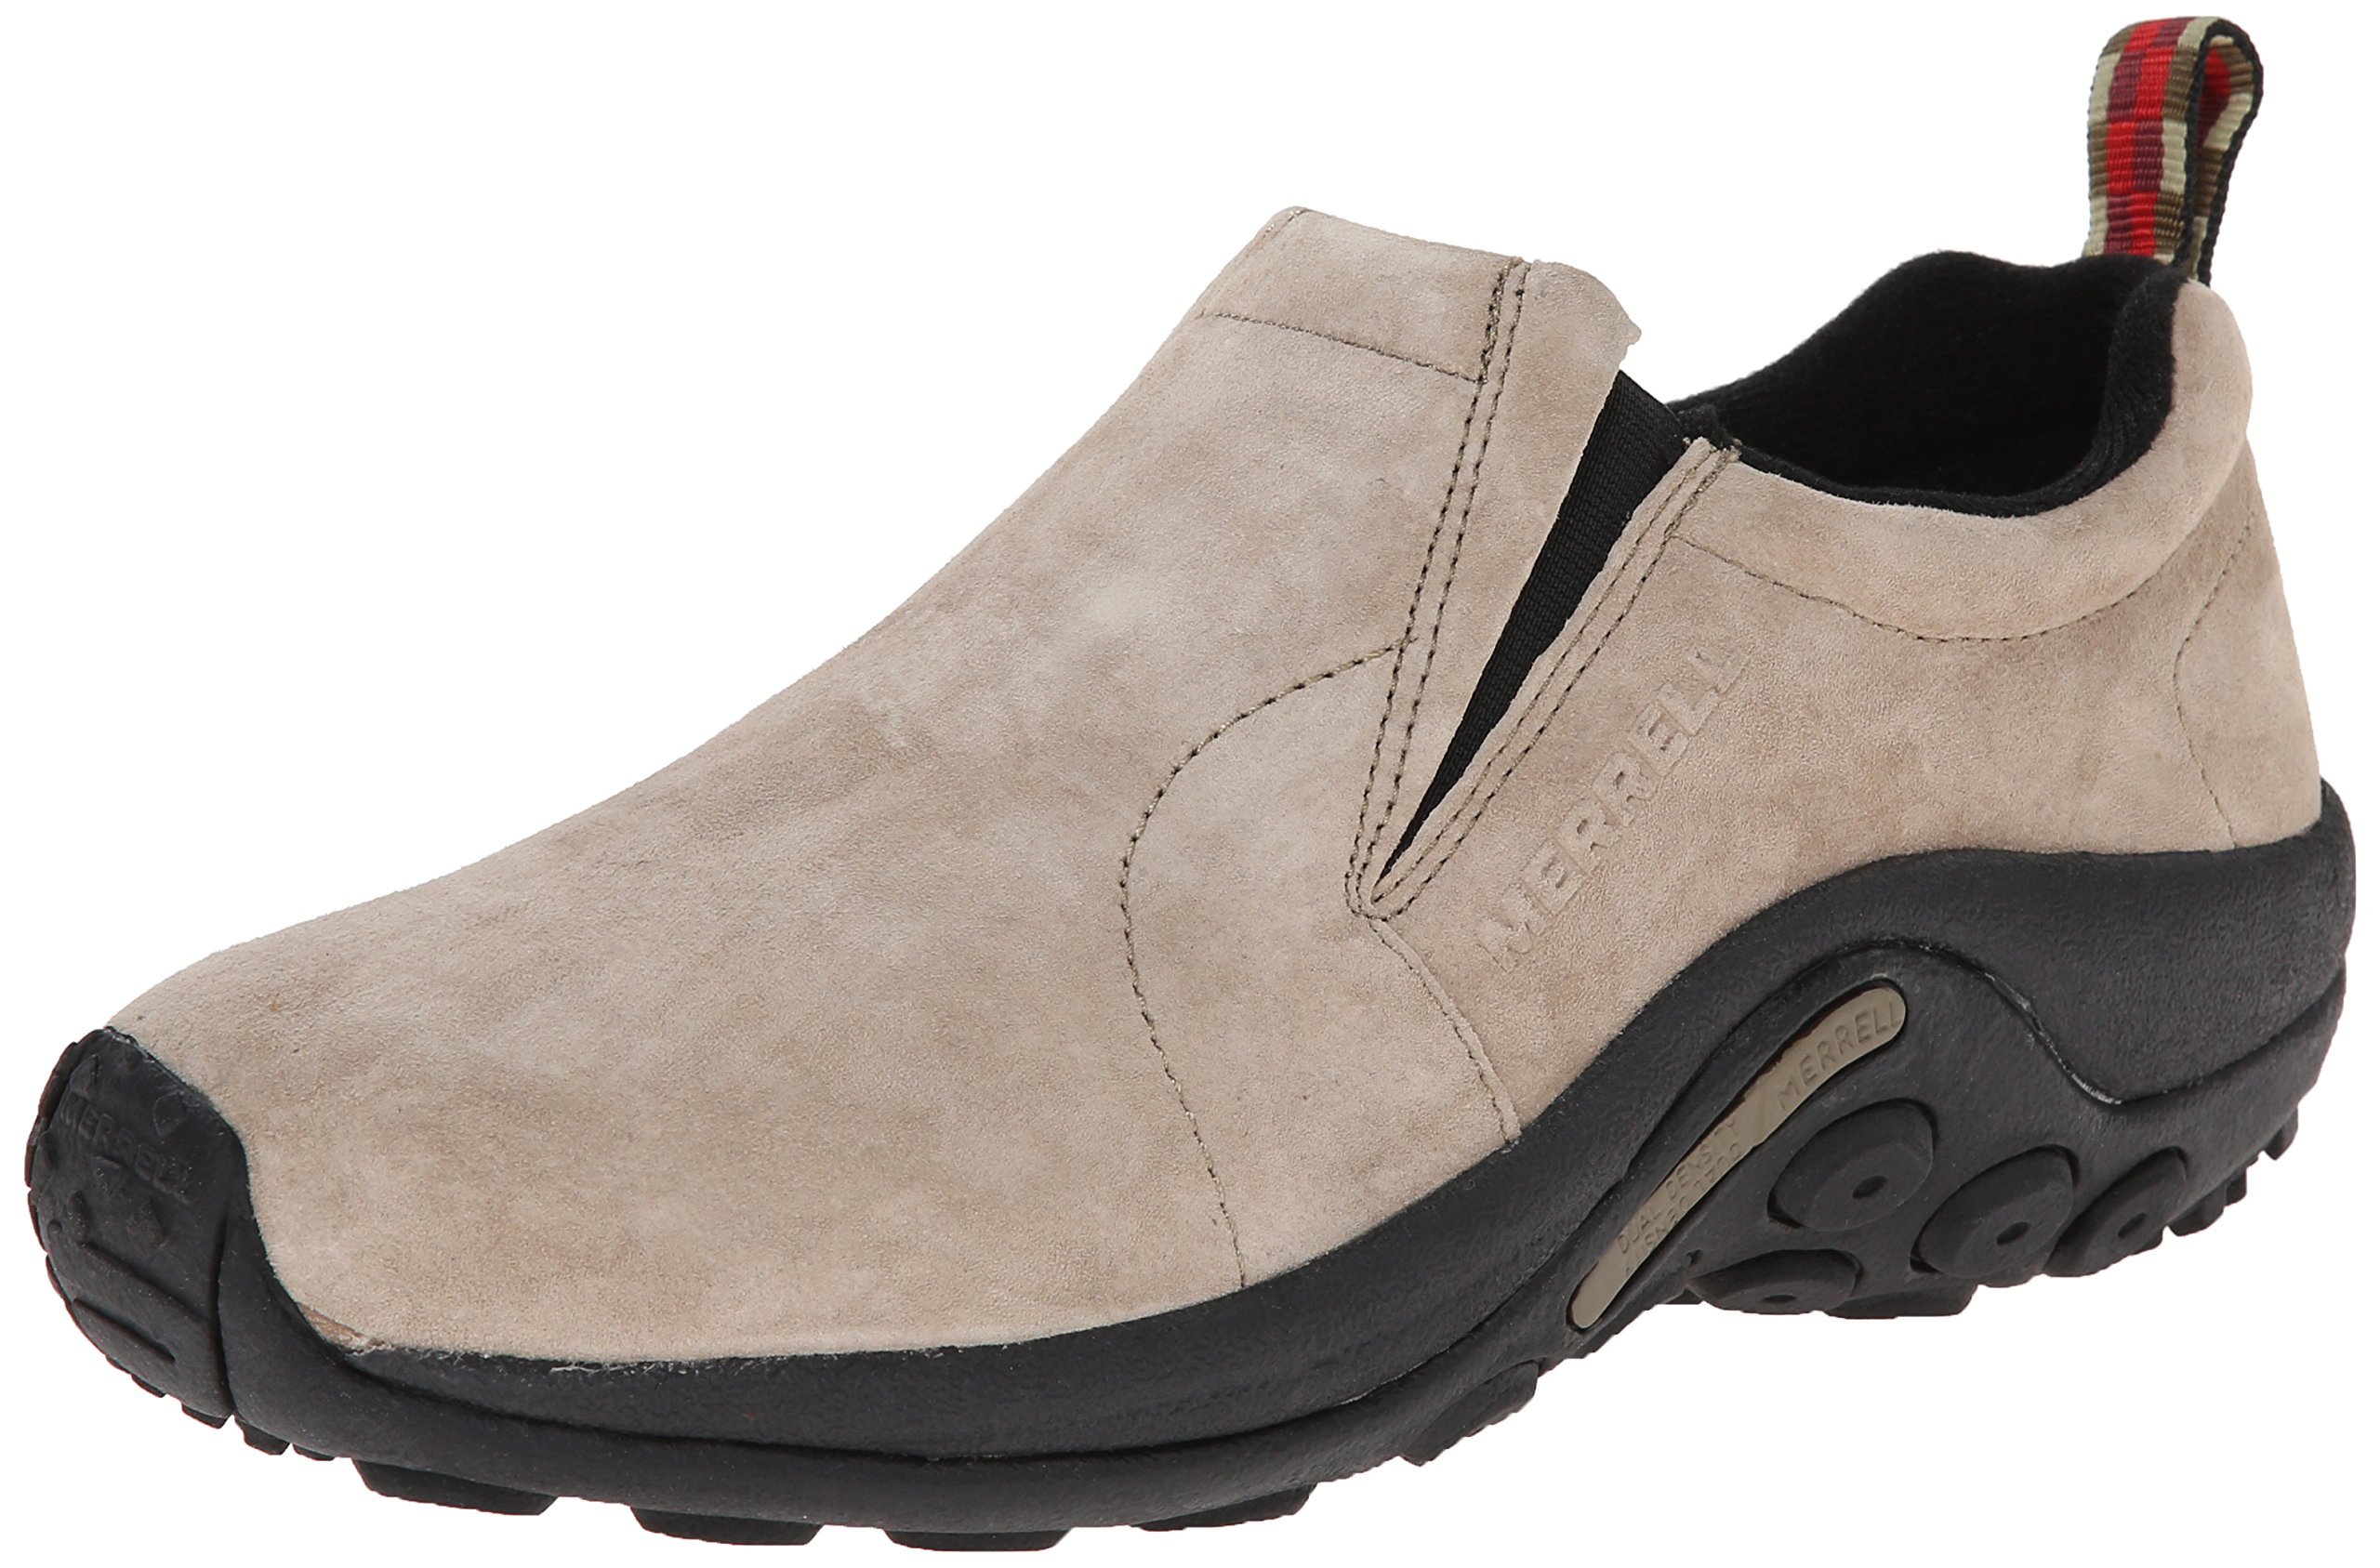 Merrell Men's Jungle Moc Slip-On Shoe,Taupe,11 M US by Merrell